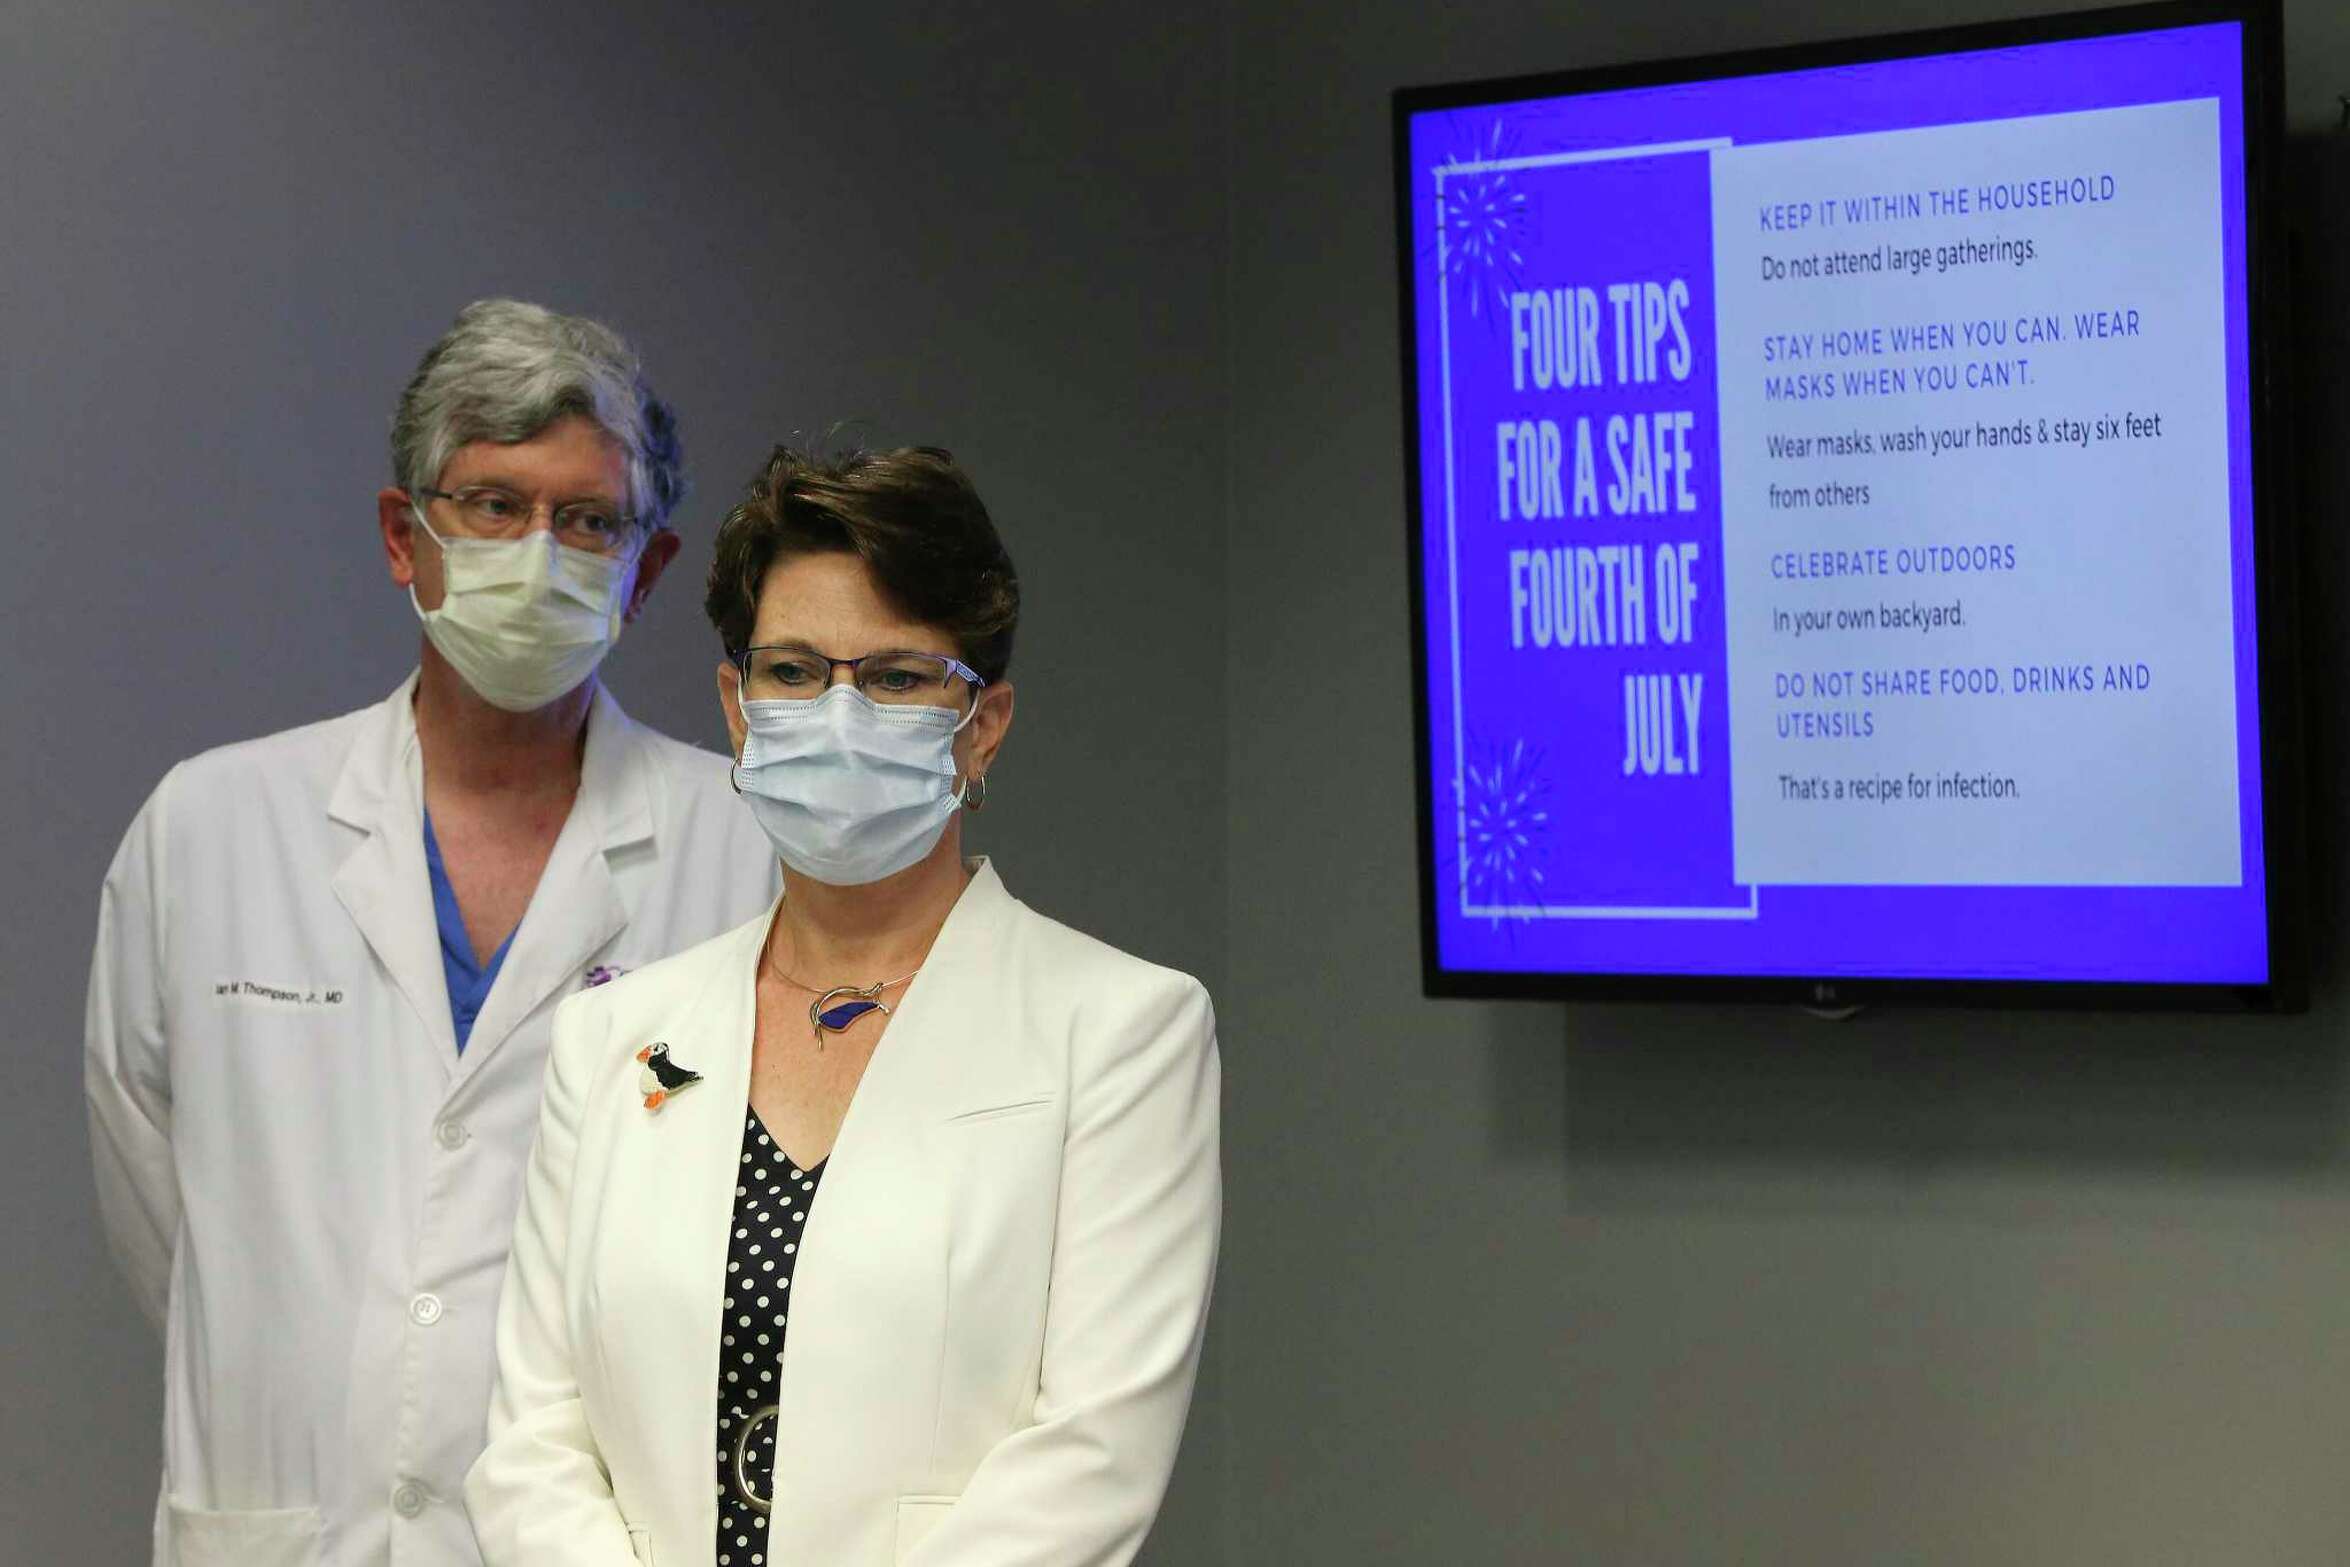 Dr. Colleen Bridger and Dr. Ian Thompson, III, CEO of Christus Medical Center stand near a screen providing safety tips for celebrating the 4th of July weekend.